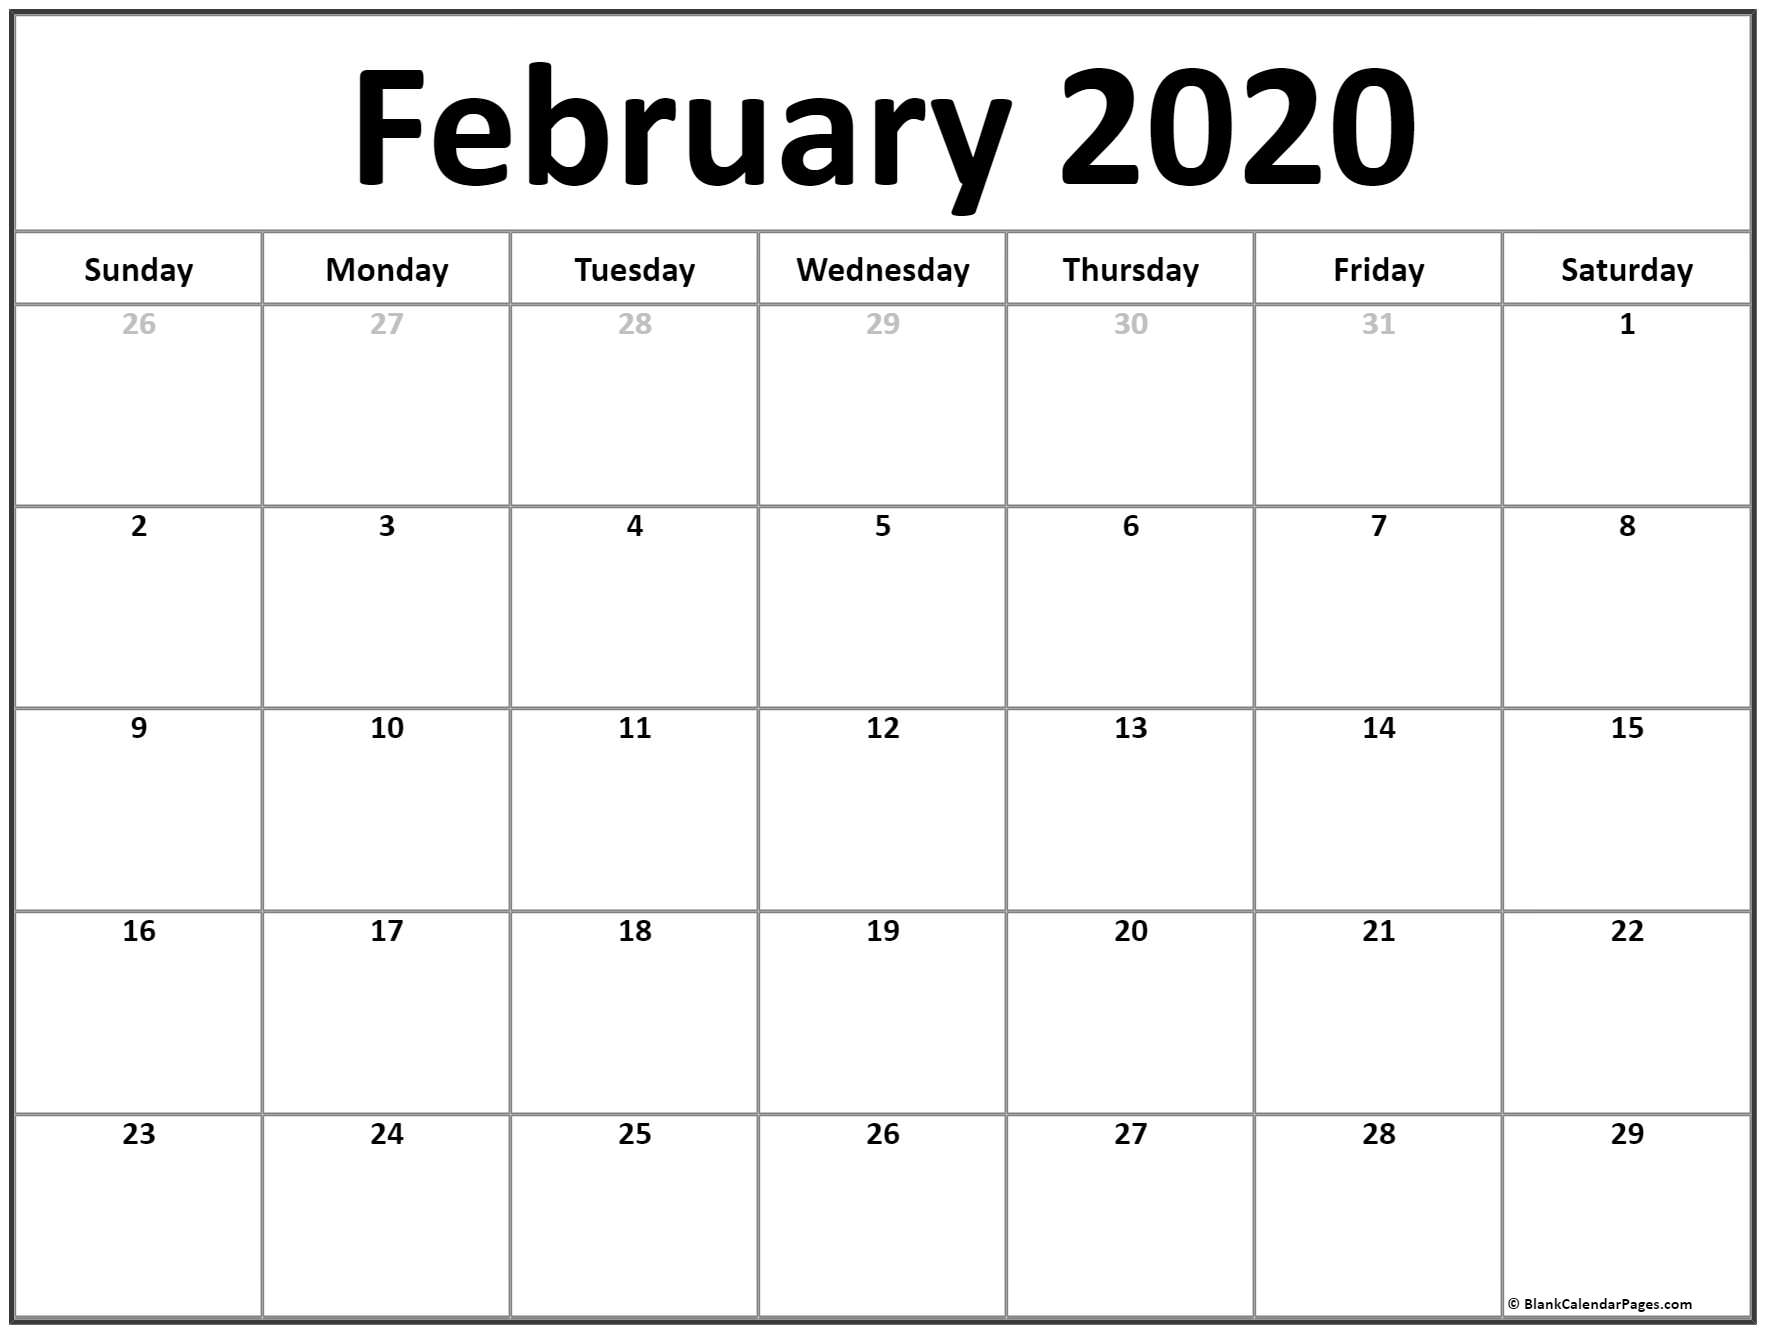 February 2020 Calendar | Free Printable Monthly Calendars pertaining to Calender 2020 With Space To Write